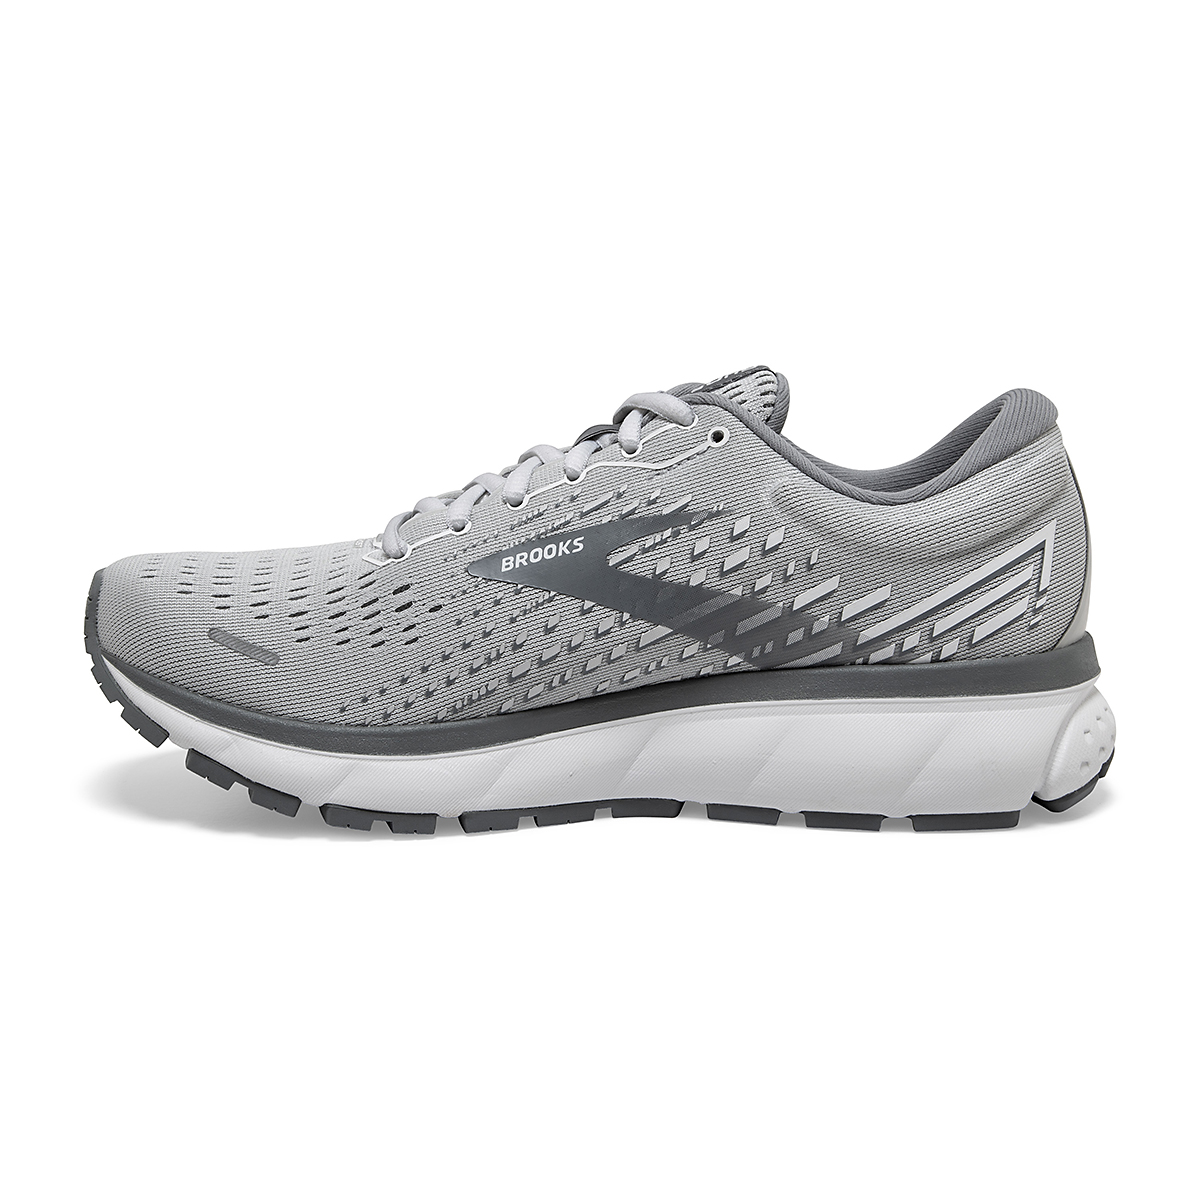 Women's Brooks Ghost 13 Running Shoe - Color: Alloy/Oyster/White - Size: 5 - Width: Regular, Alloy/Oyster/White, large, image 2